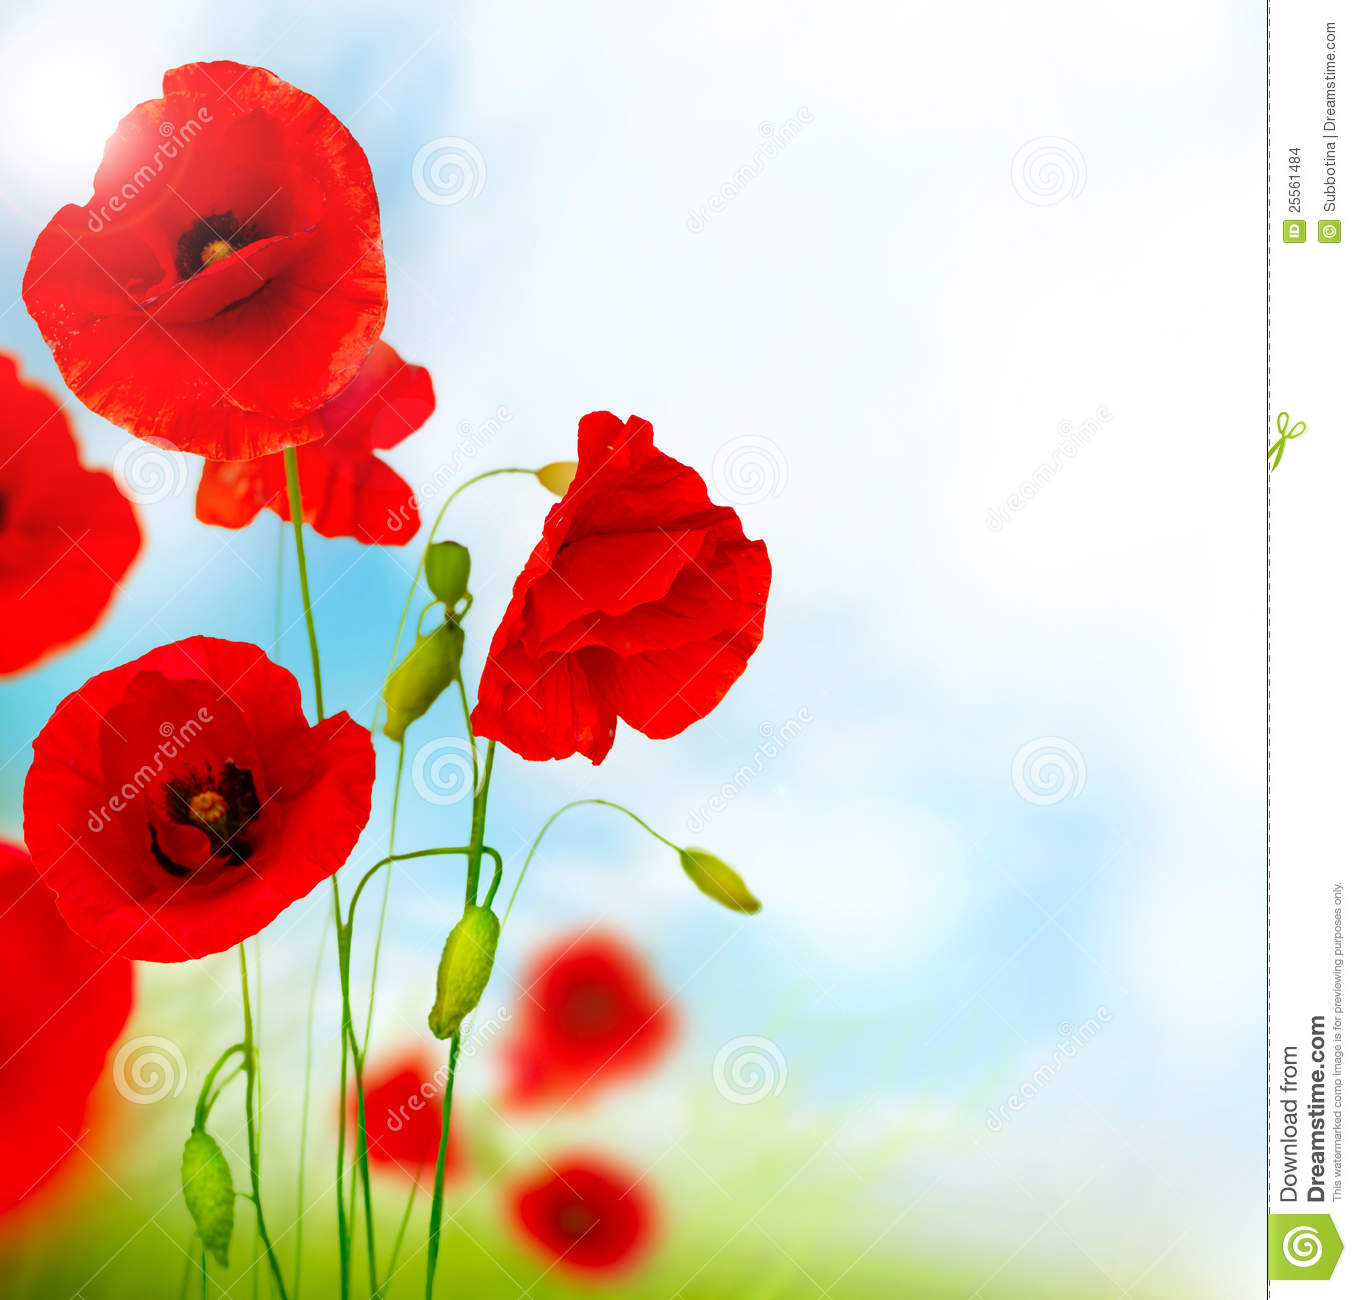 Red poppy flower stock photo image of floral bloom 25561484 red poppy flower mightylinksfo Choice Image